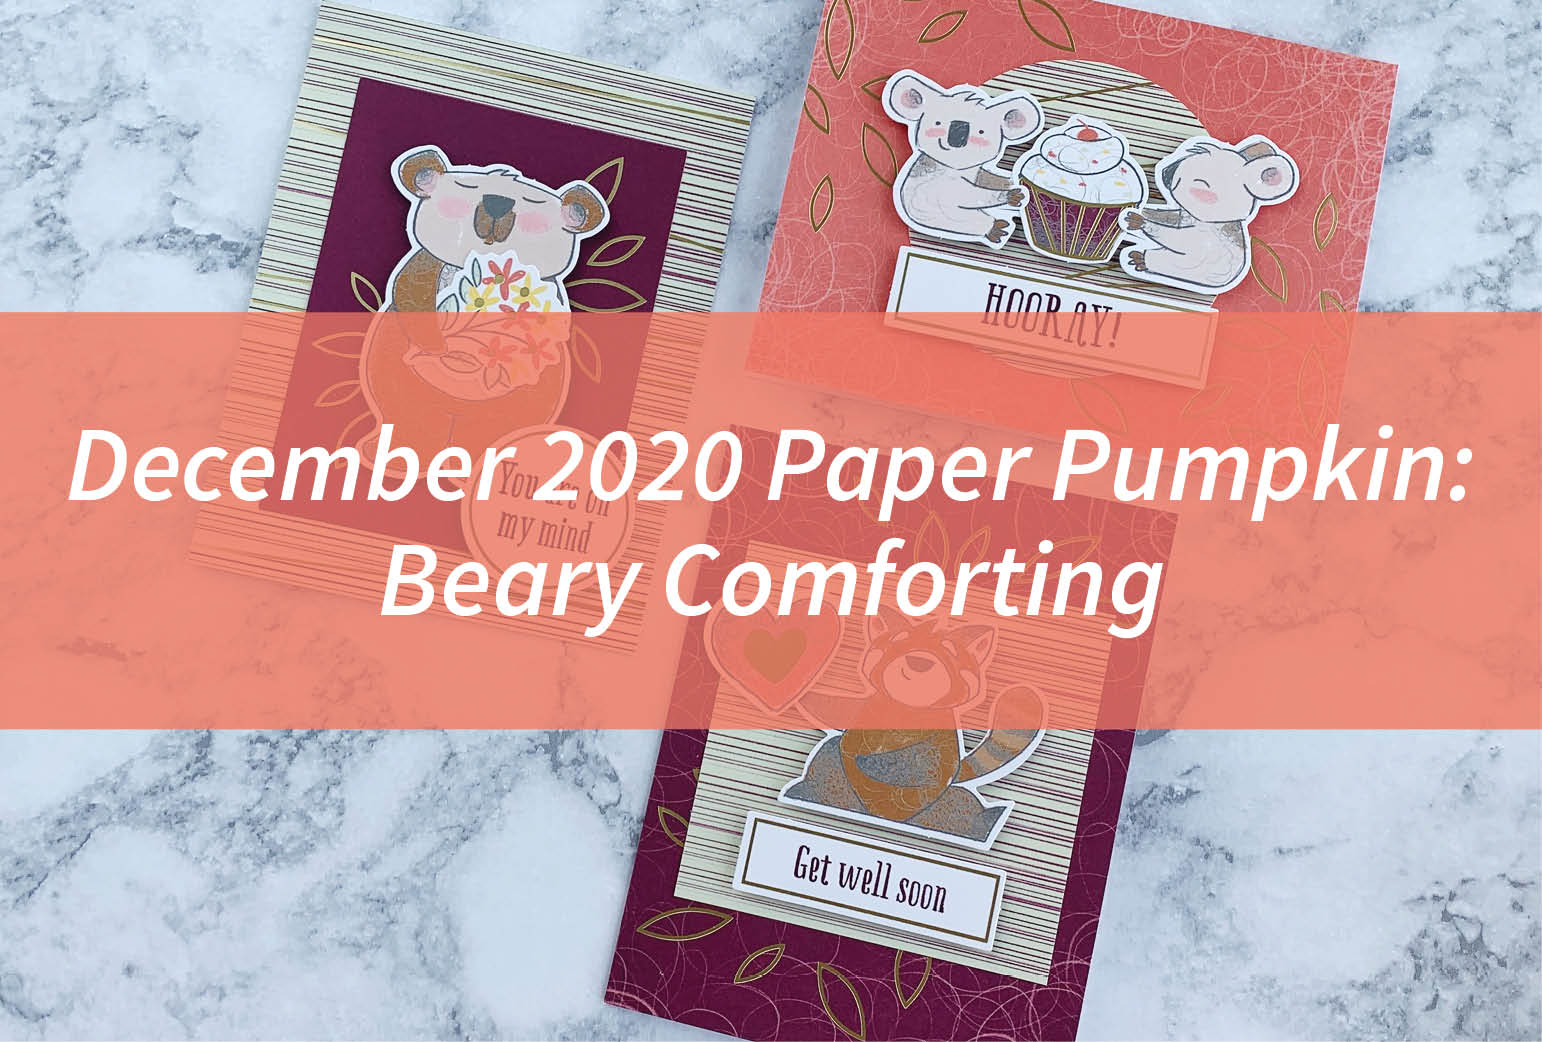 December 2020 Paper Pumpkin: Beary Comforting